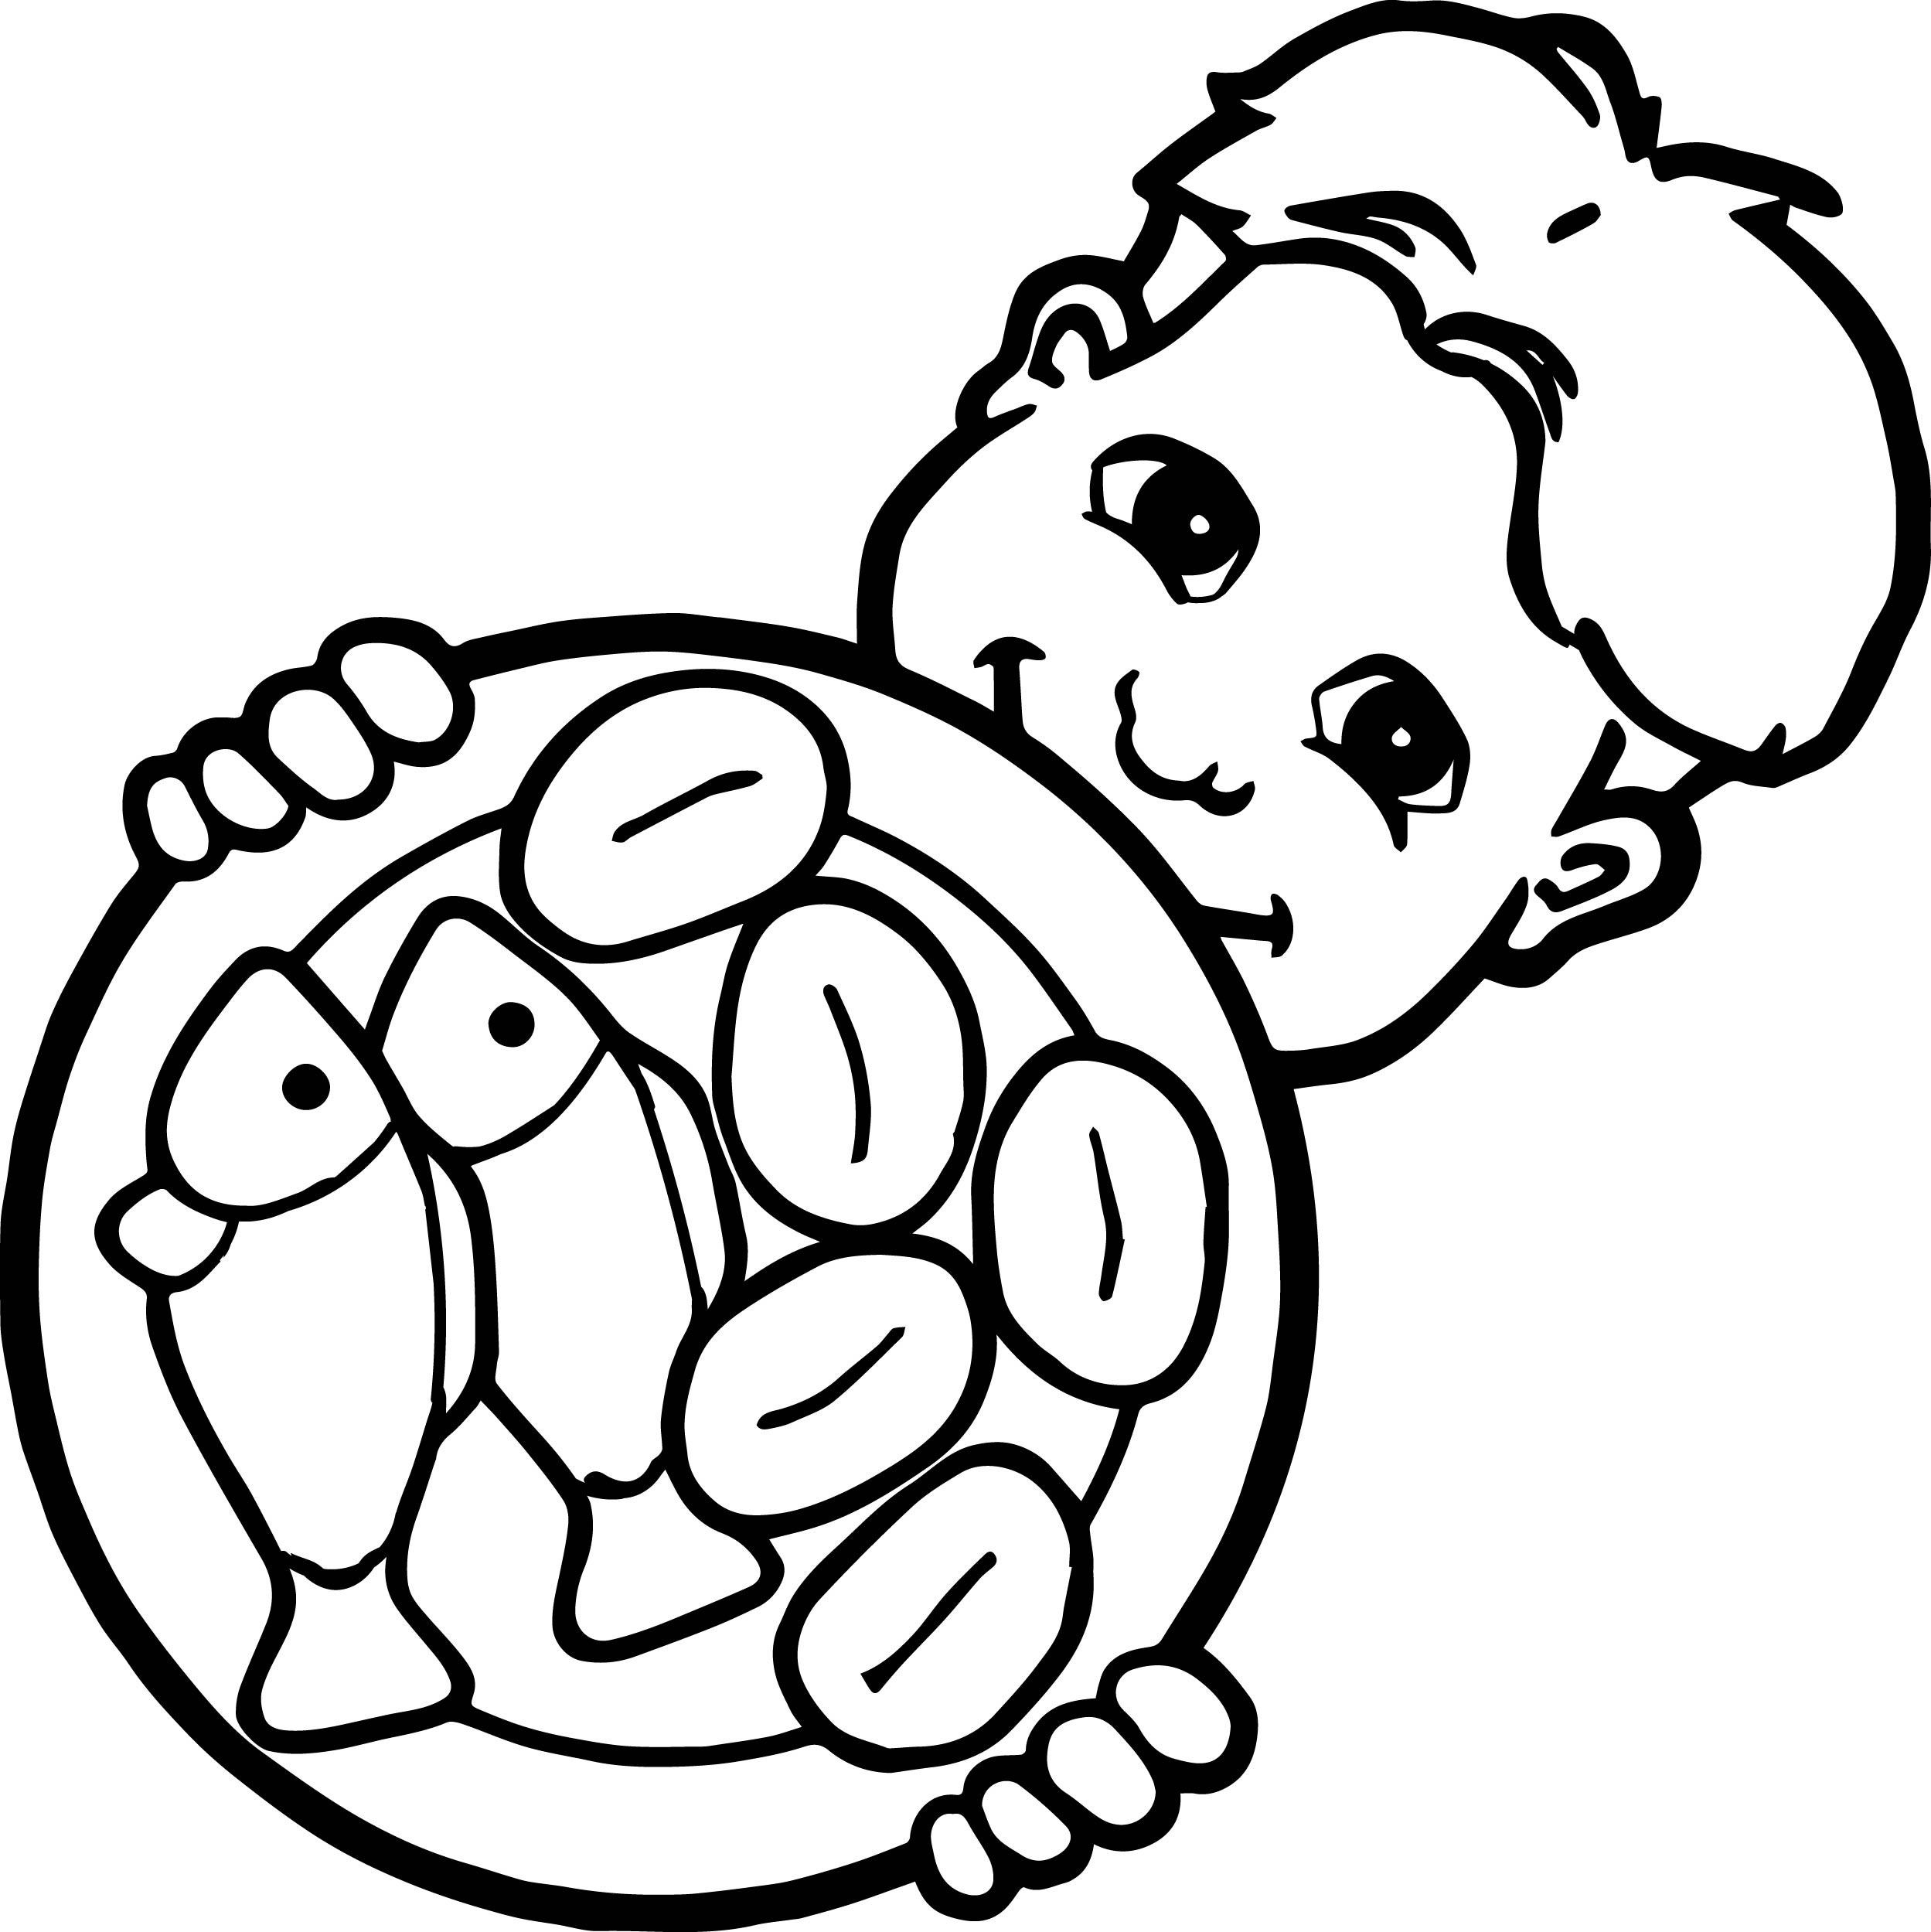 5 Loaves And 2 Fish Child Coloring Page